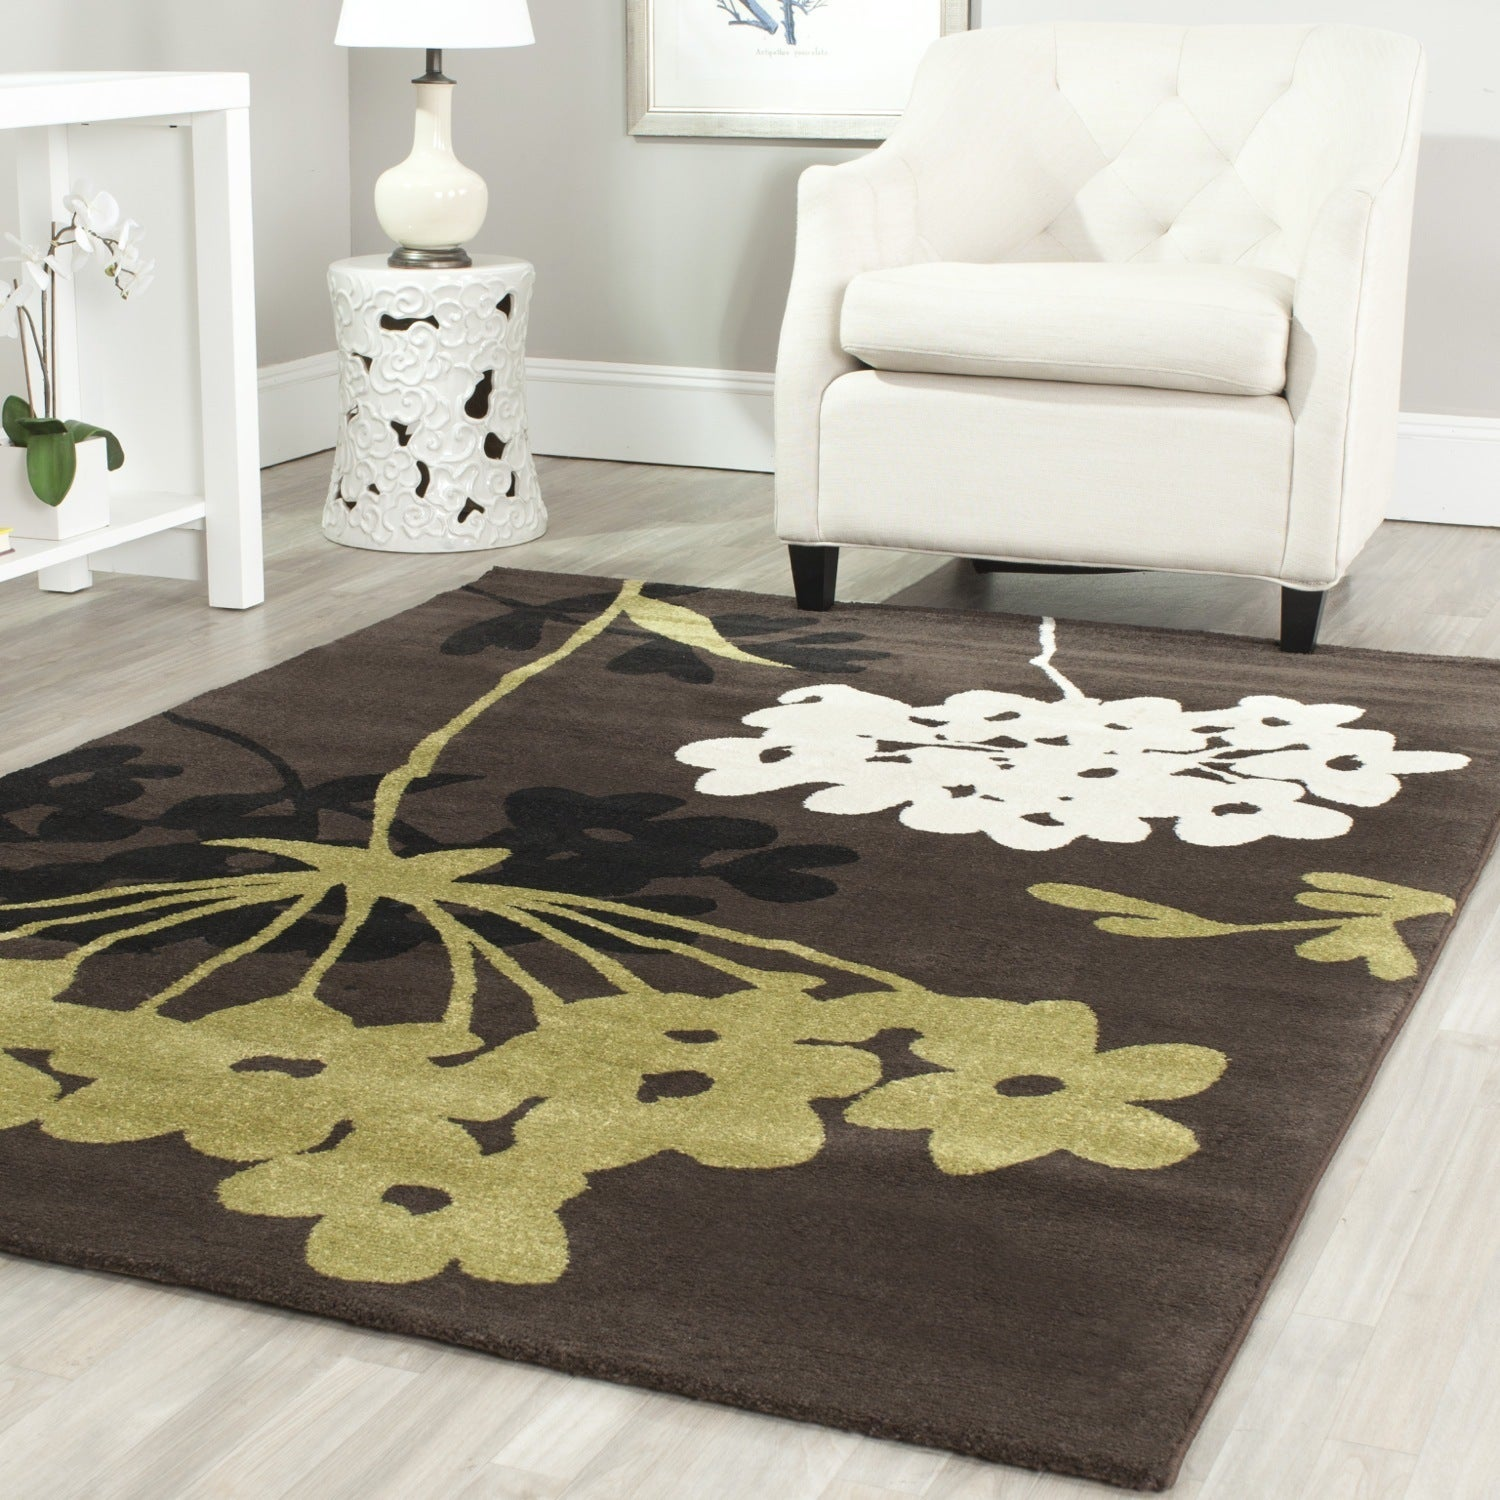 lamp combined brown room rugs design ceramic light above livings table pattern chic shade with under black pendant white tiled dining for rectangle rug round living furniture shabby set elegant and flooring rustic flower